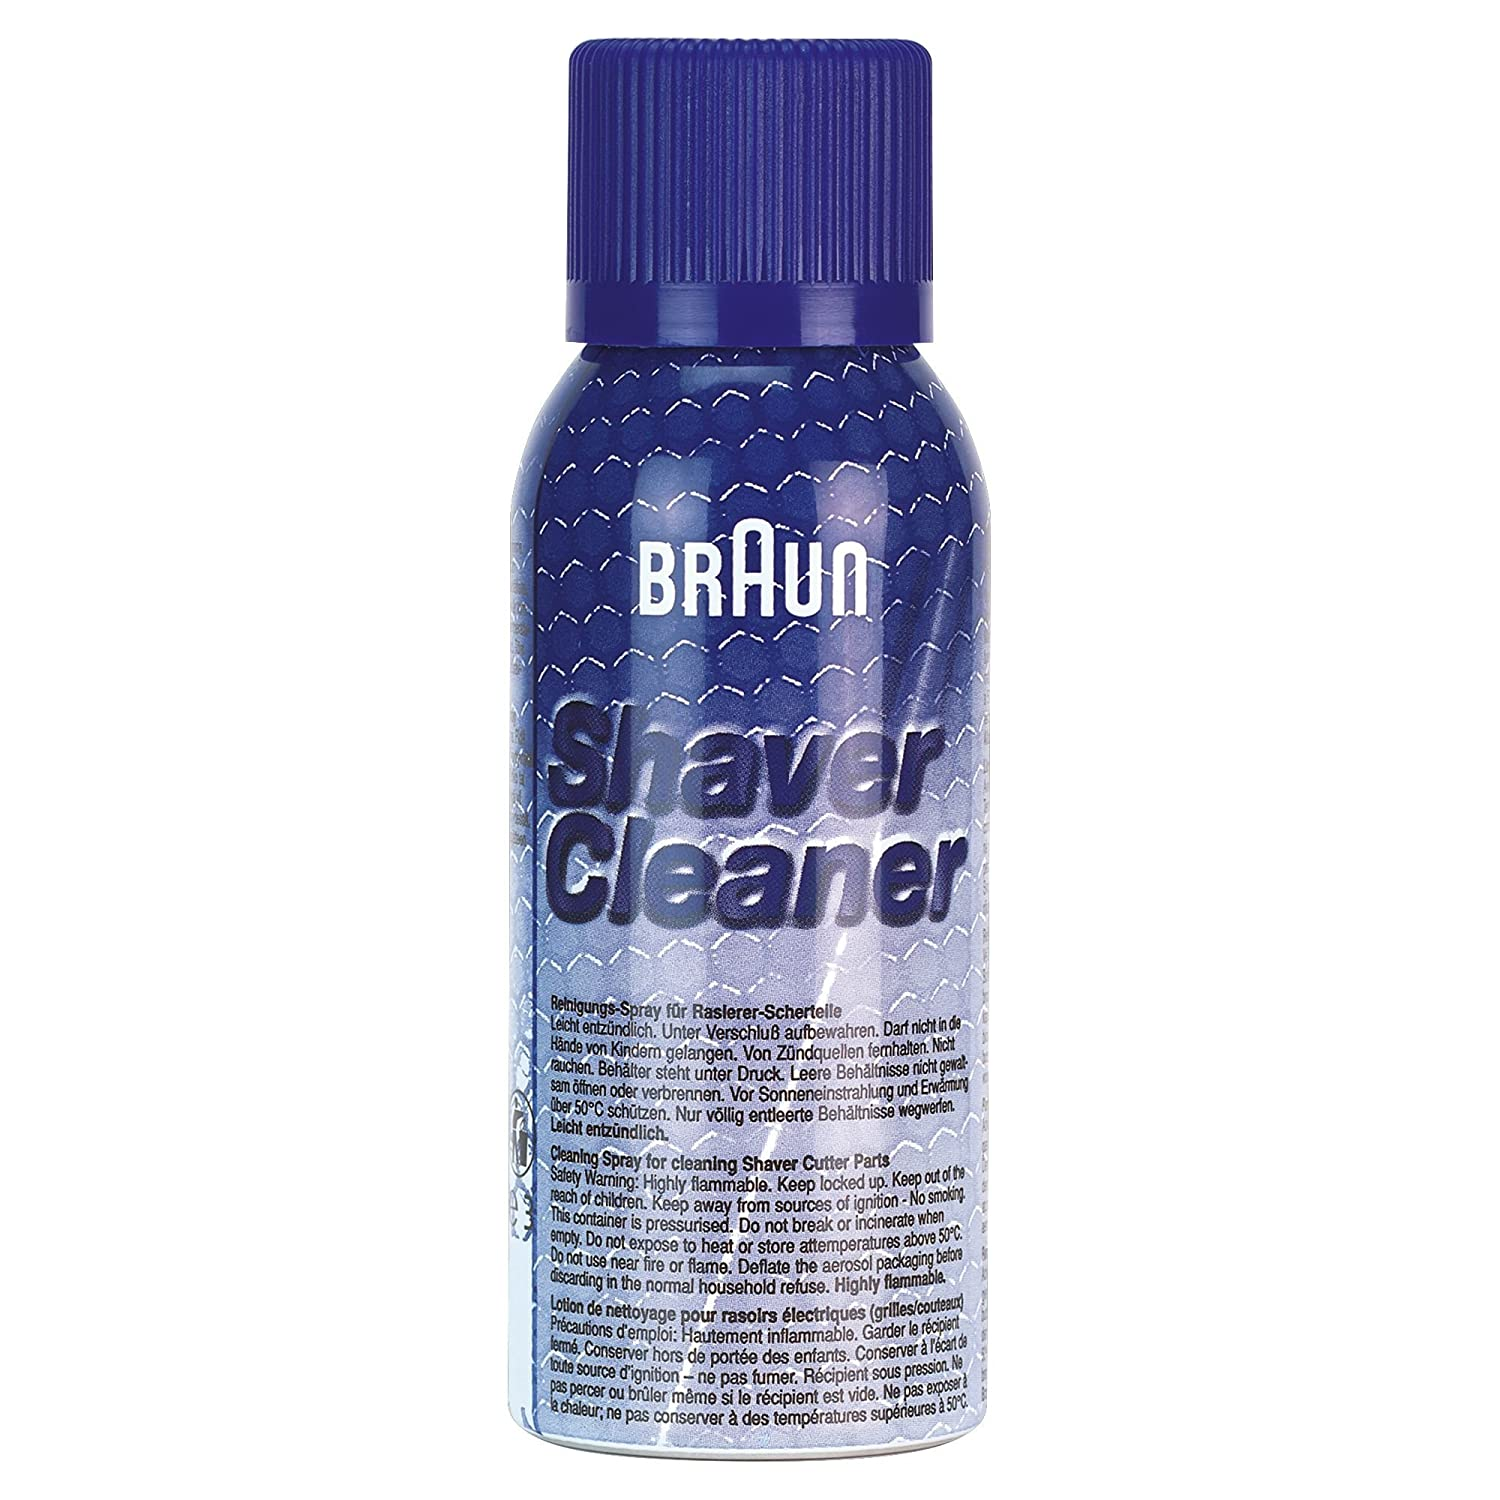 Braun shaver spray 65002724 B001SSO2OS